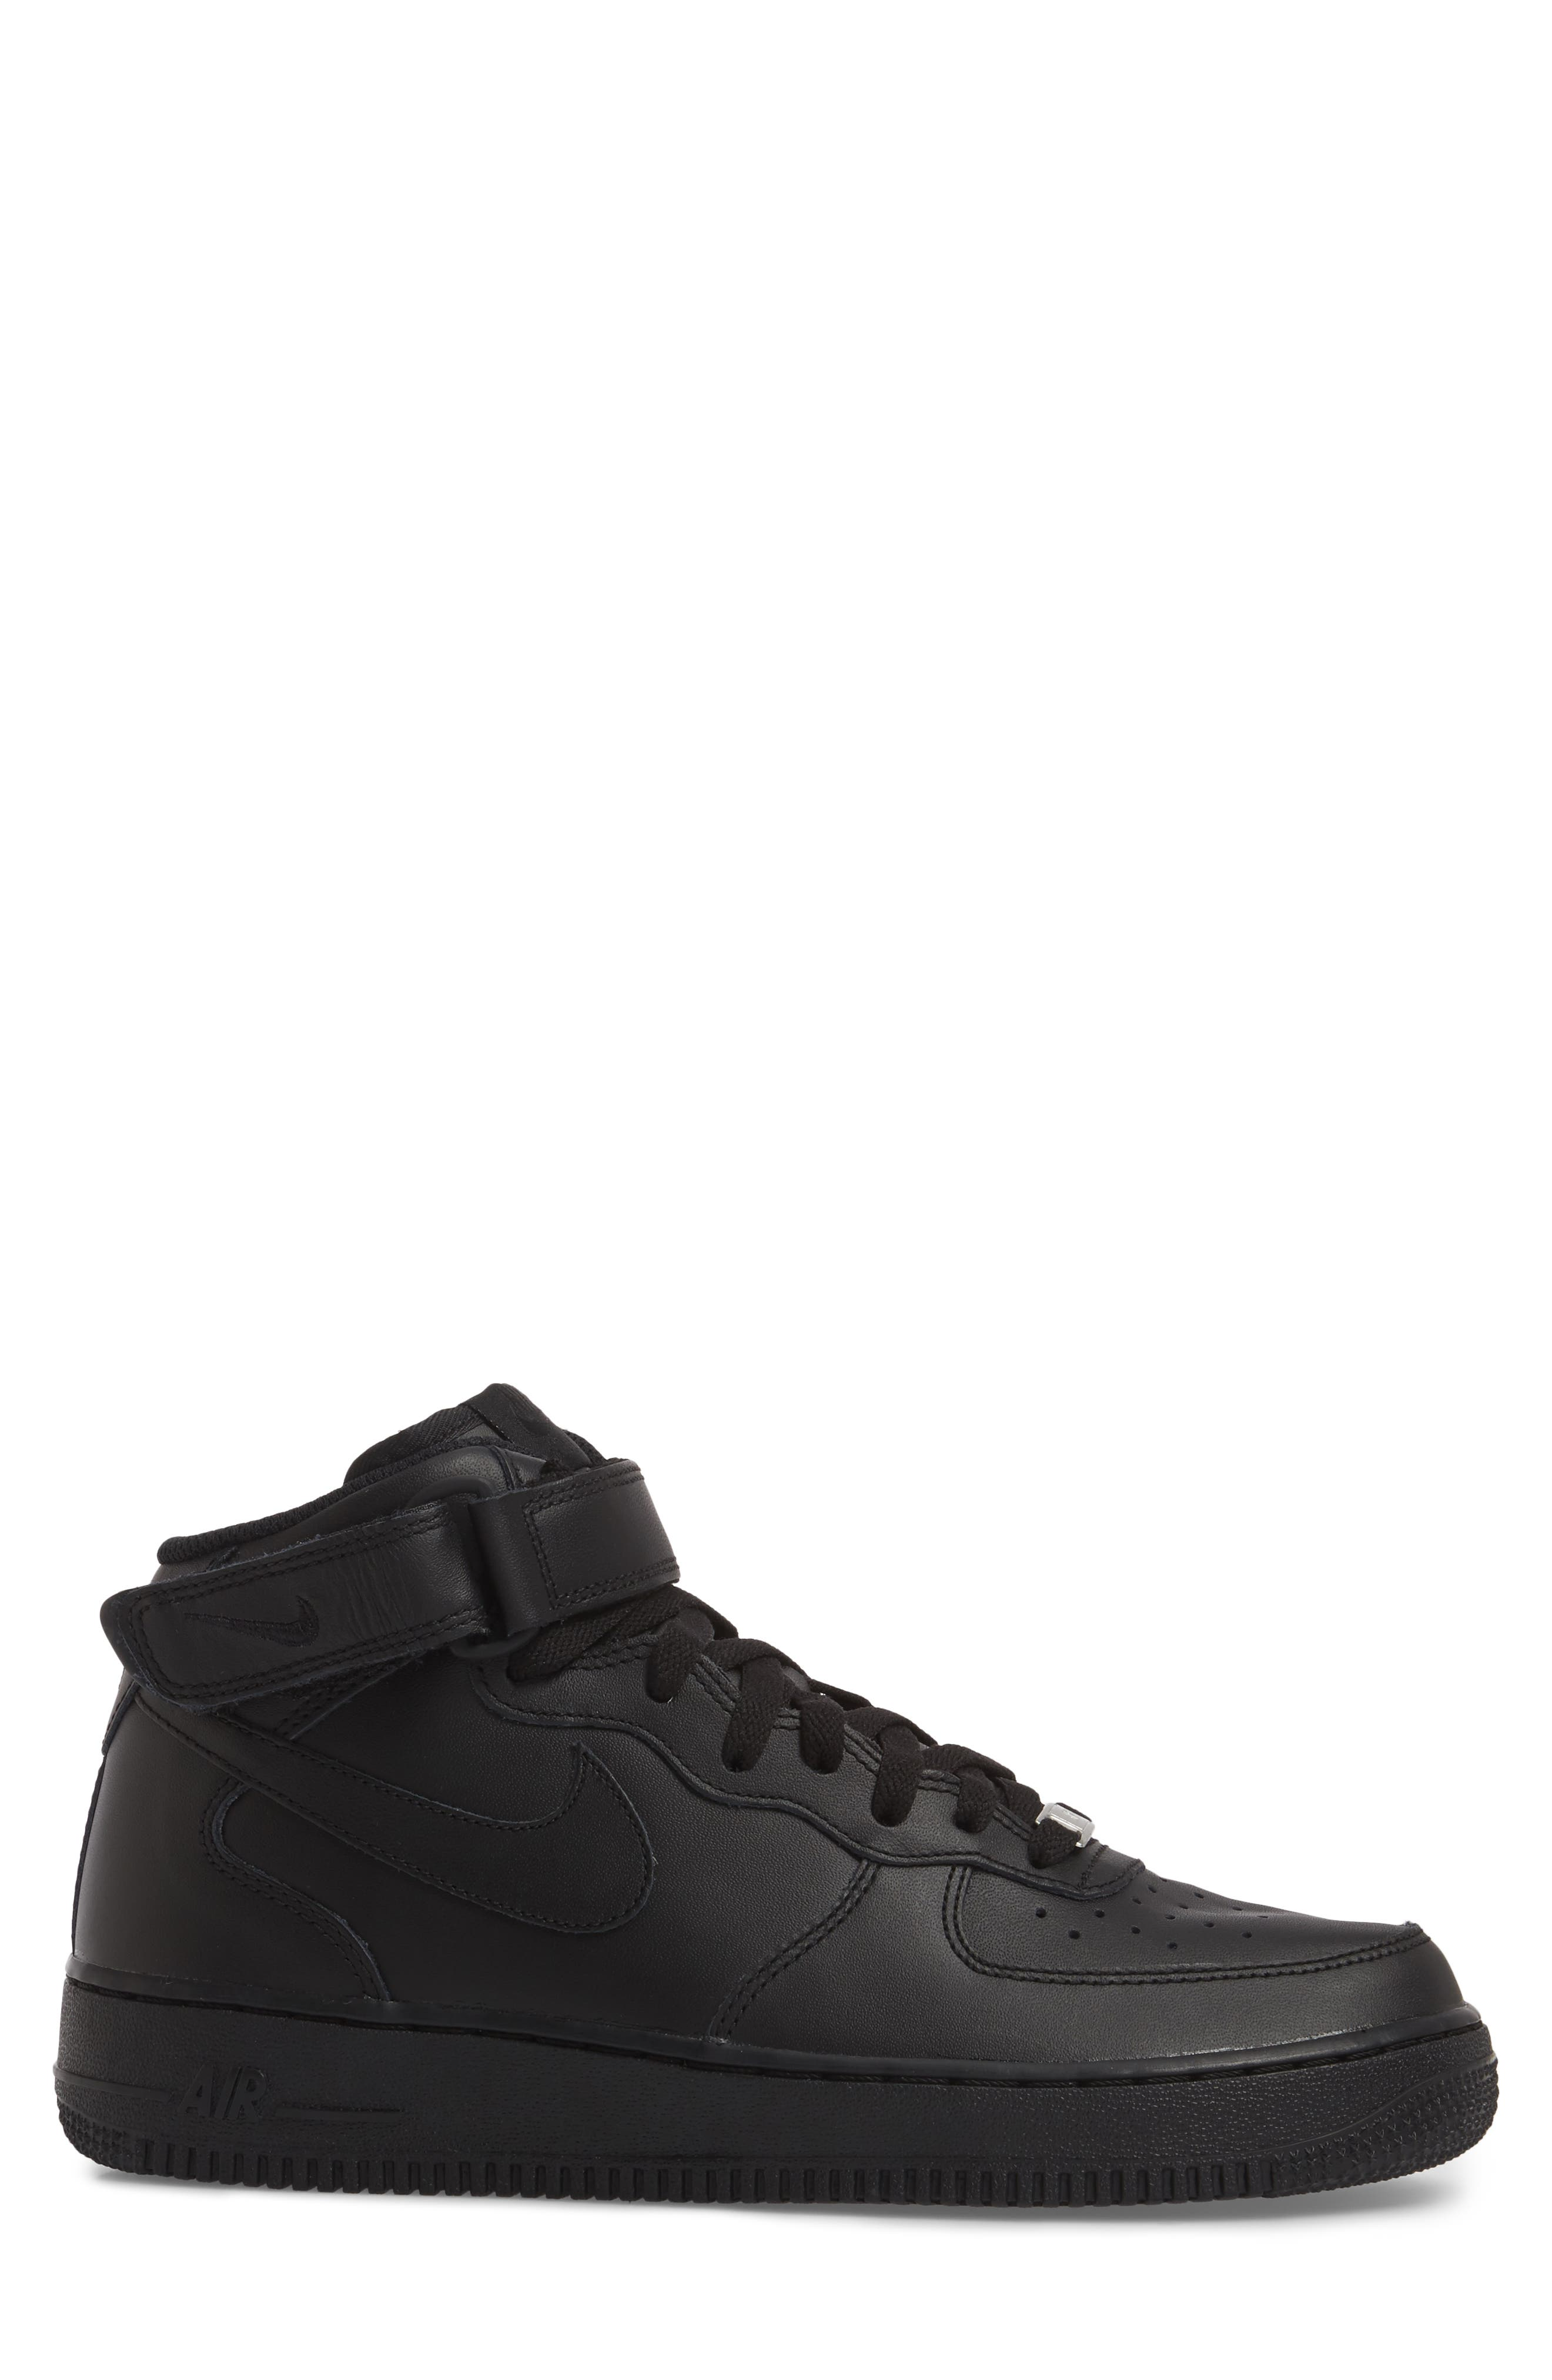 Air Force 1 Mid '07 Sneaker,                             Alternate thumbnail 3, color,                             BLACK/ BLACK